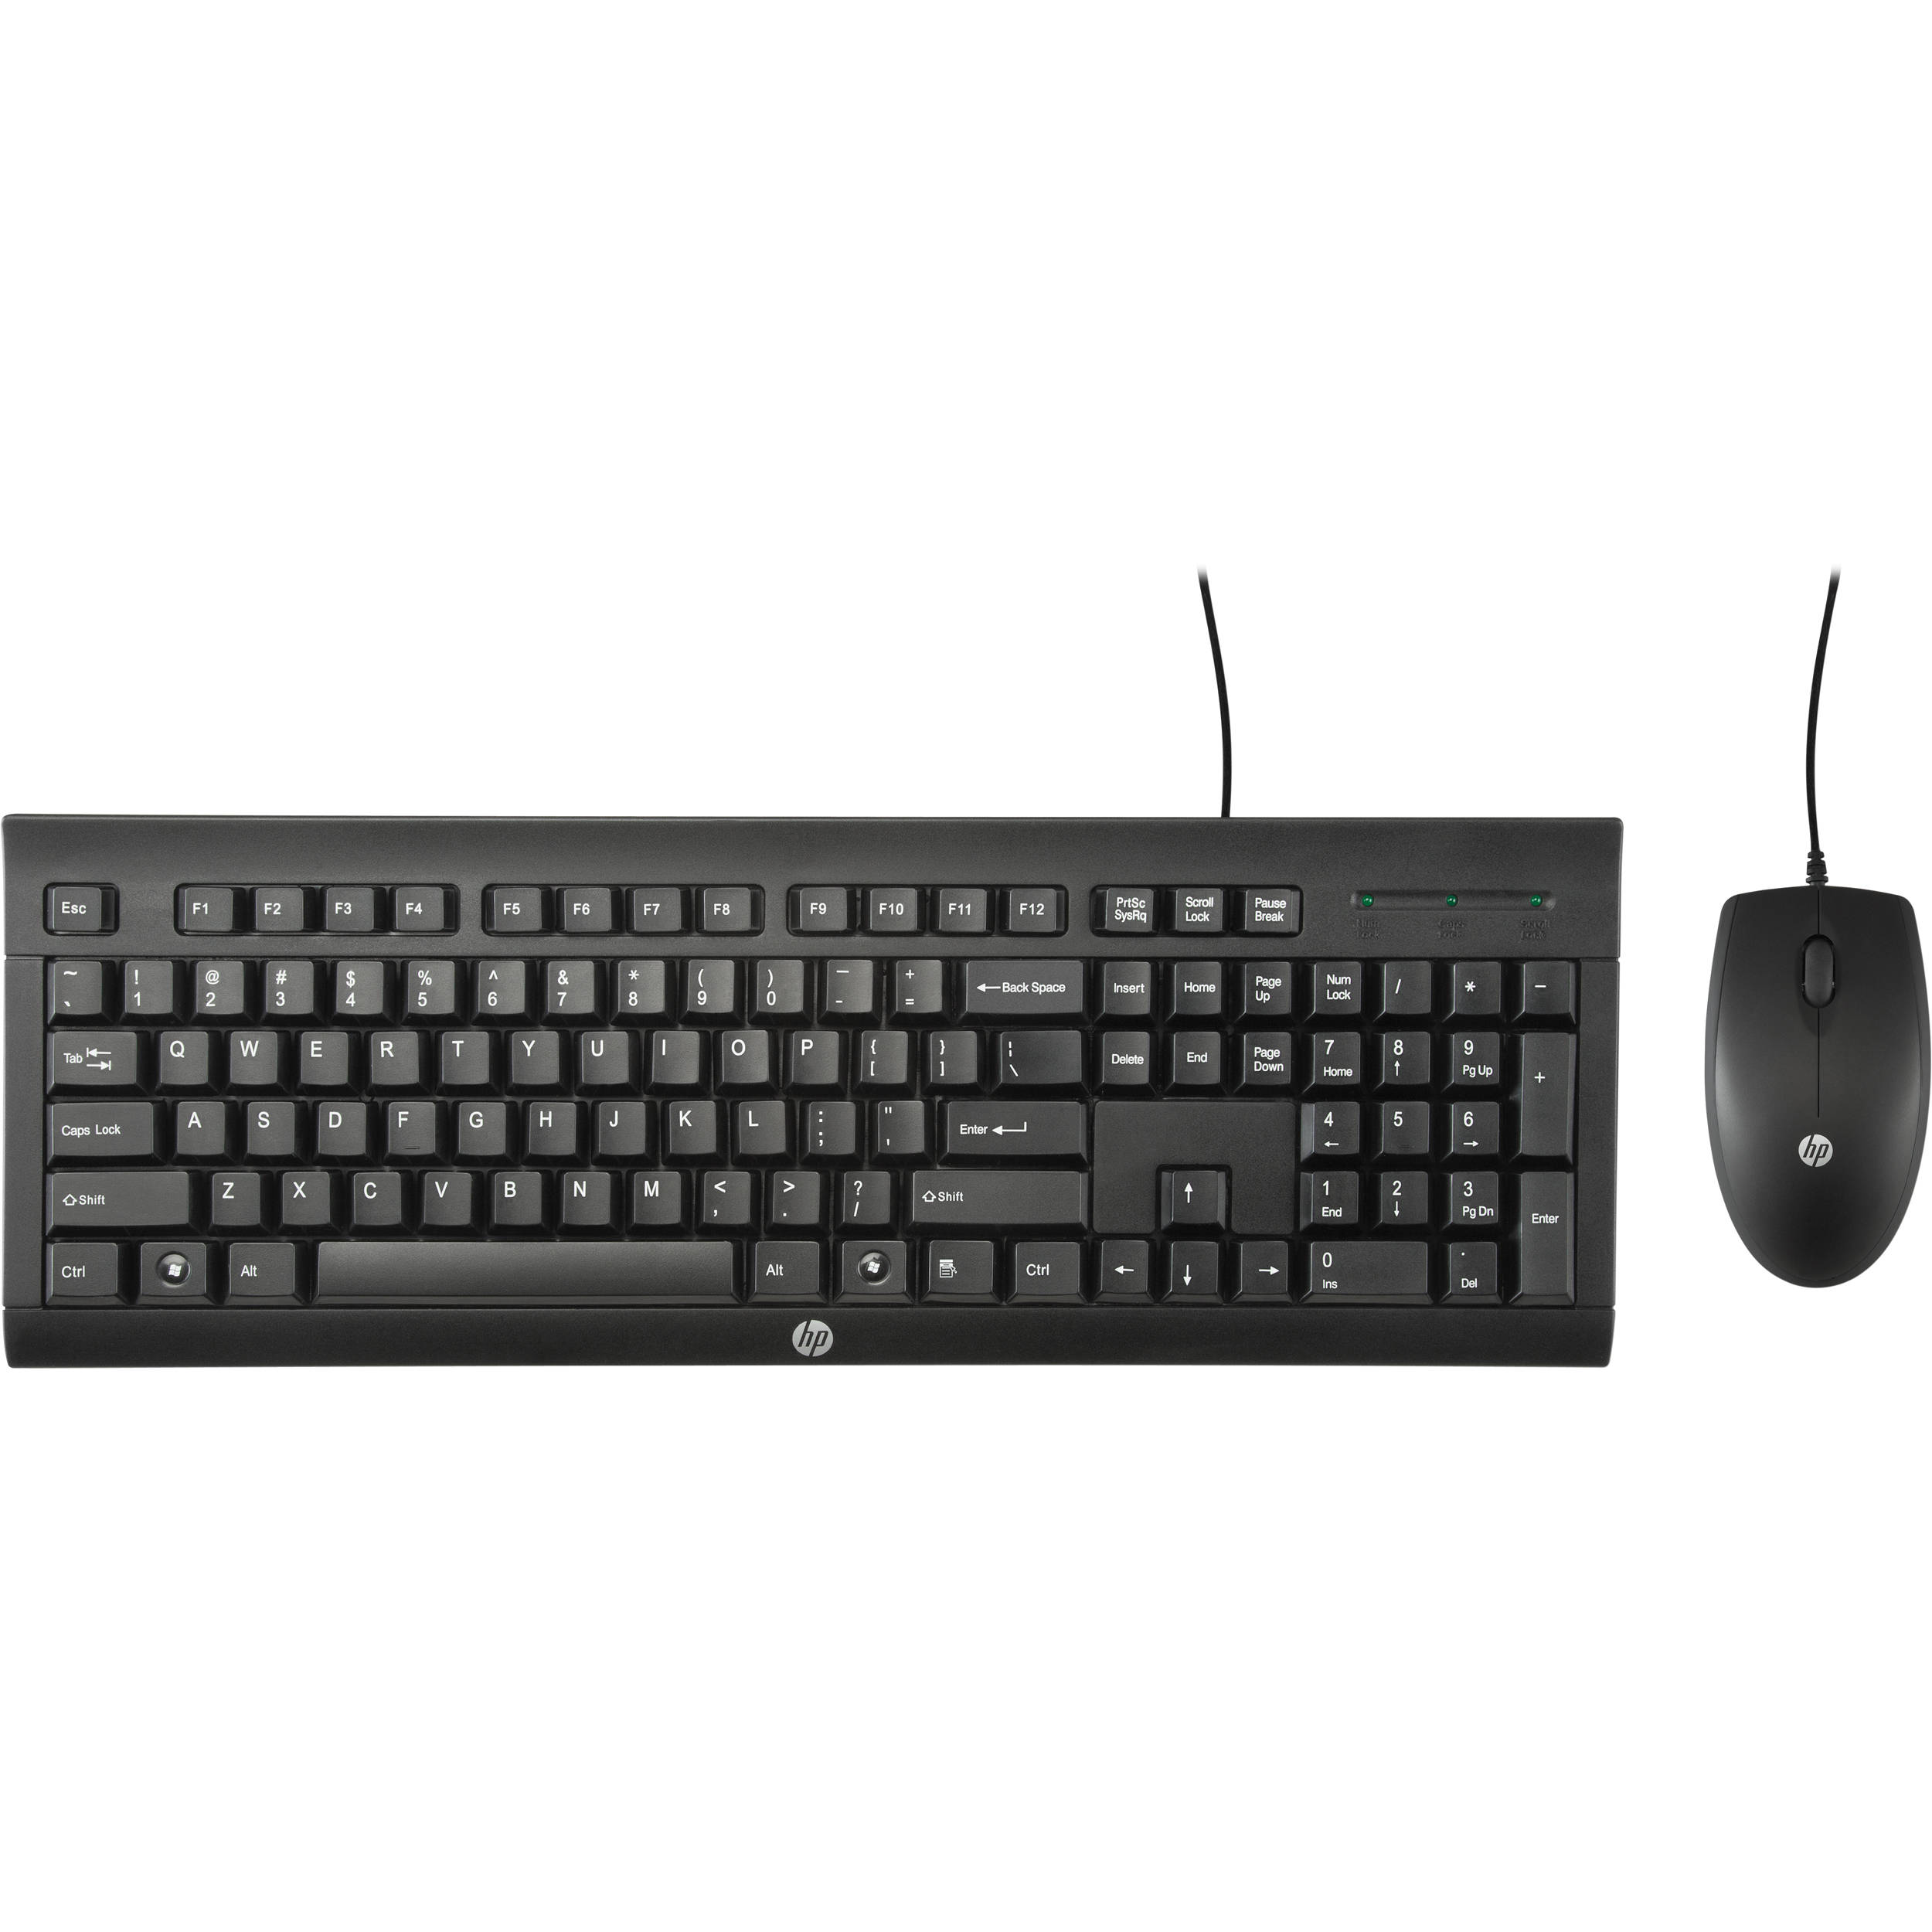 HP C2500 Desktop Keyboard and Mouse